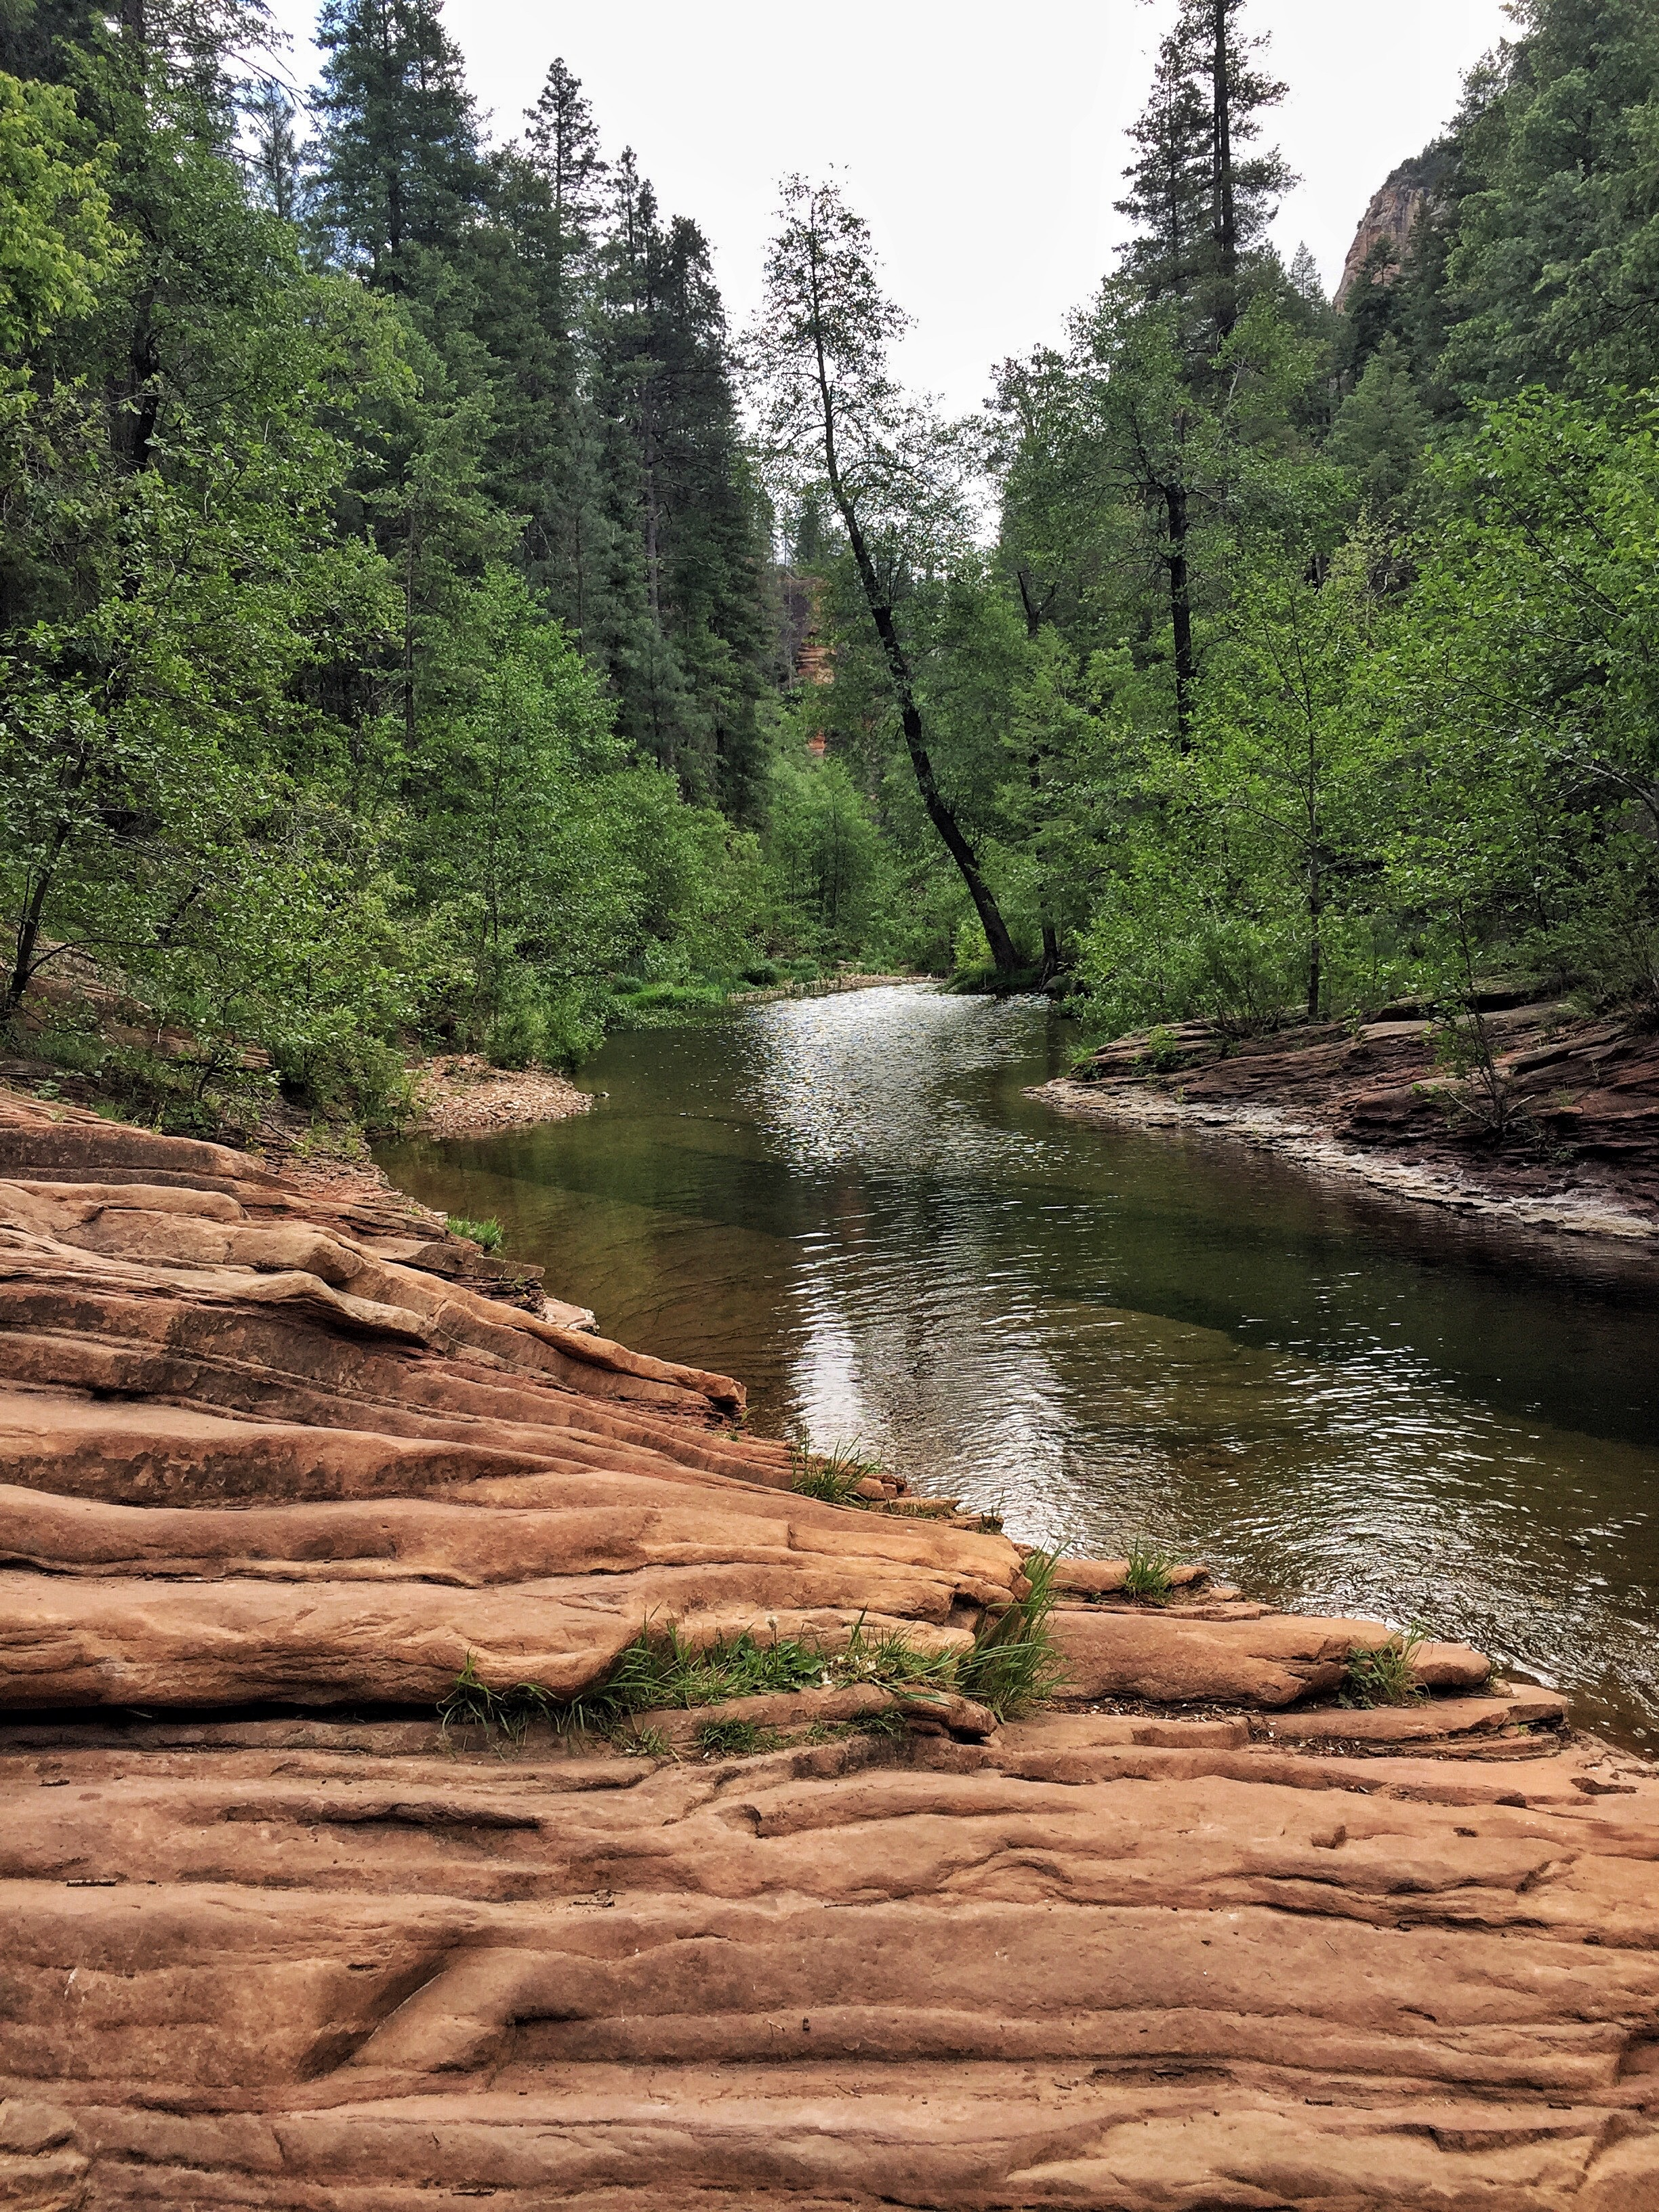 And the water so cool! West Fork, Coconino National Forest, Sedona Arizona.